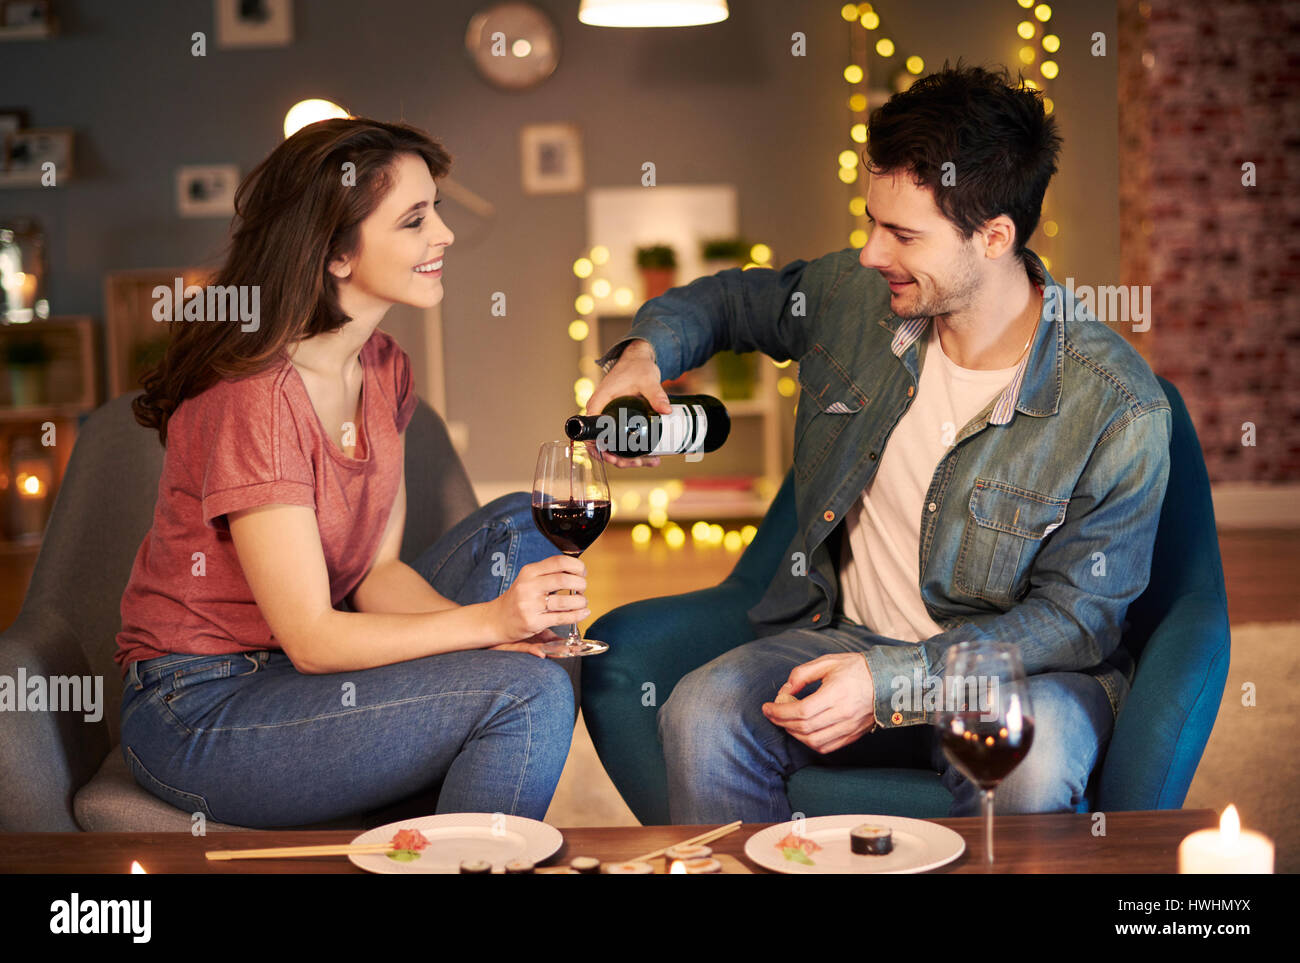 Boyfriend serving red wine while date - Stock Image